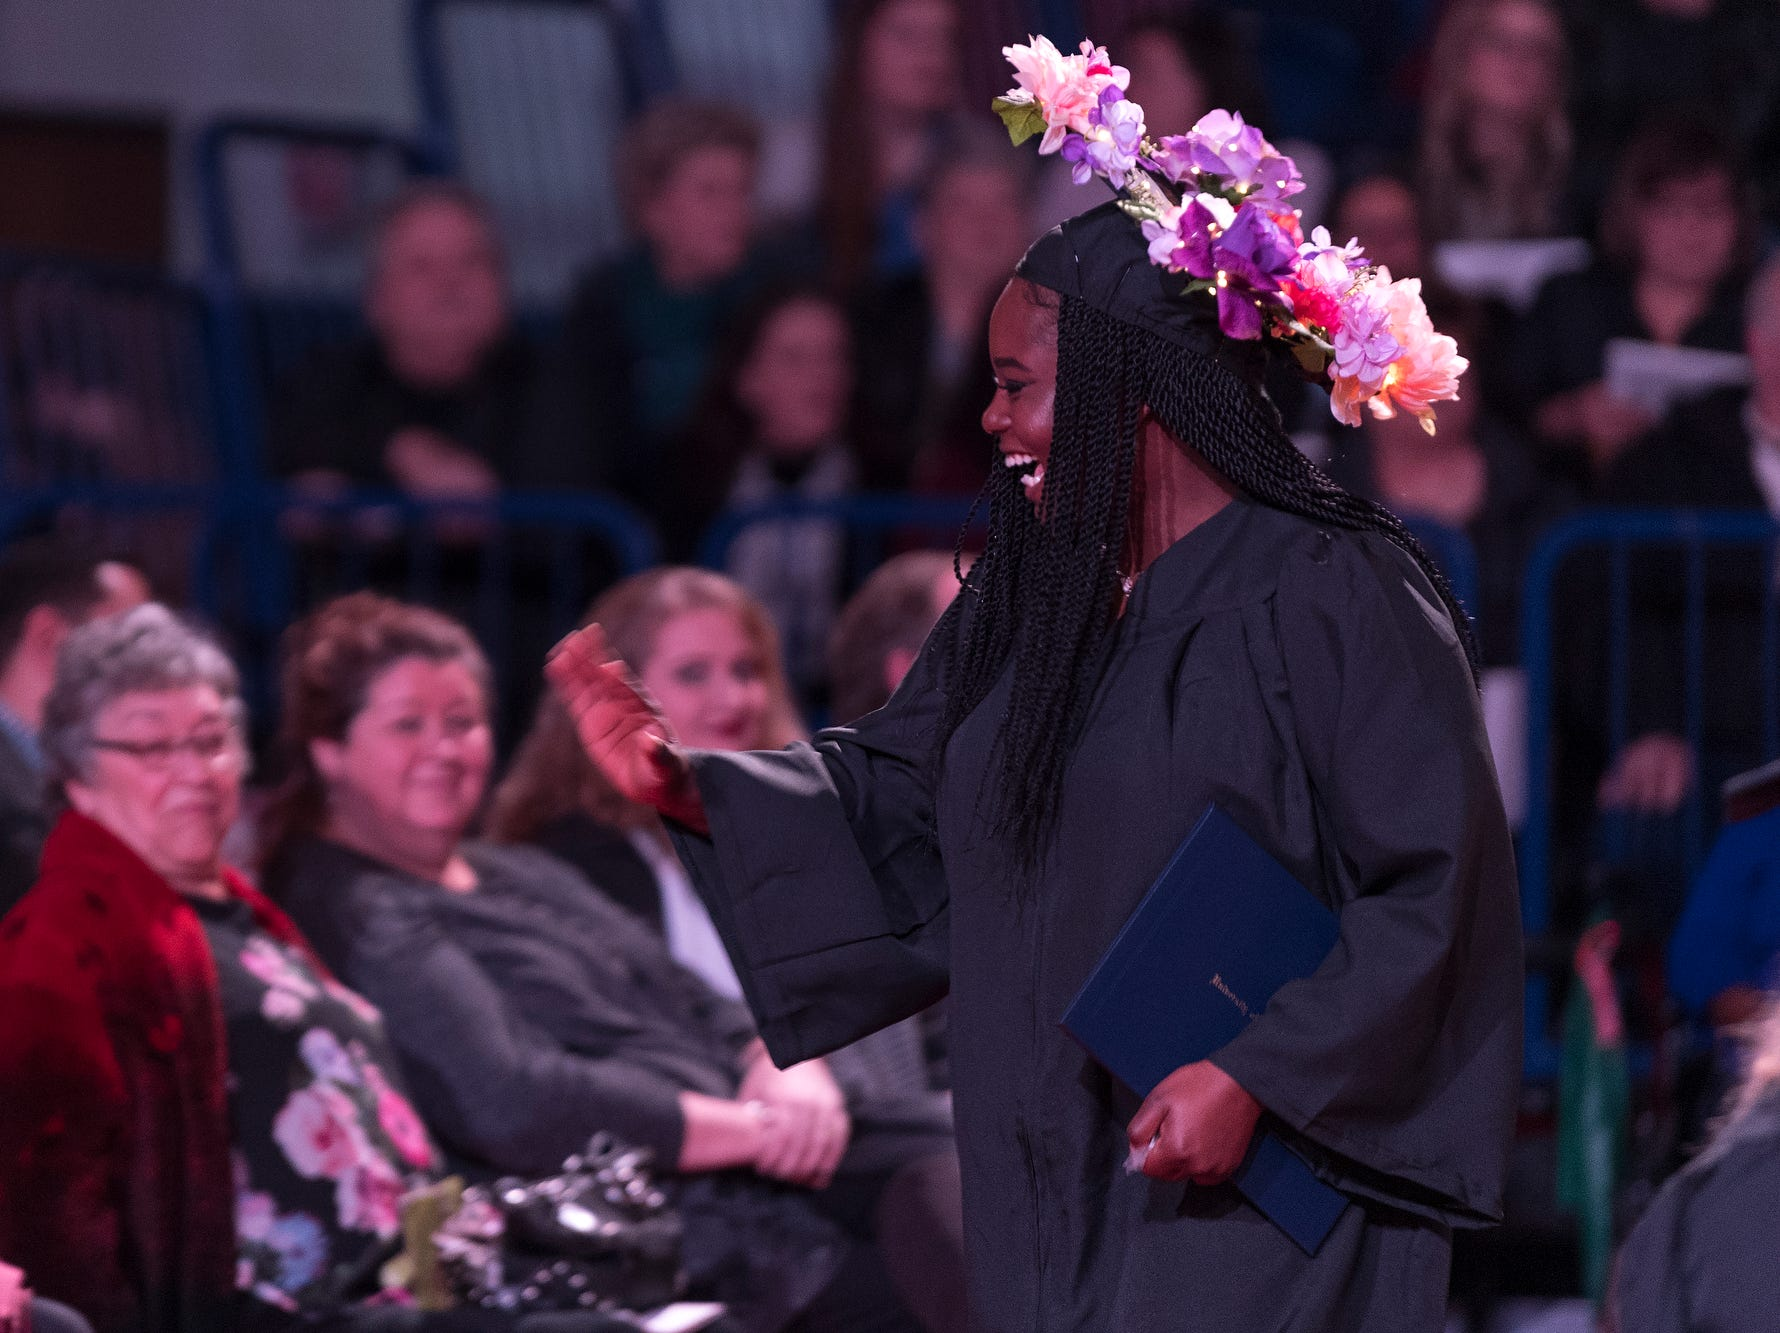 """Lilly ChaNell Howard of Alton, Ill., waves to an audience member as she walks back to her seat during the fall commencement ceremony for the University of Southern Indiana's College of Liberal Arts and the Romain College of Business at the school's Physical Activities Center in Evansville, Ind., Saturday, Dec. 8, 2018. The Bachelor of Science graduate's cap had the phrase """"every end is a new beginning"""" written in gold on the top."""